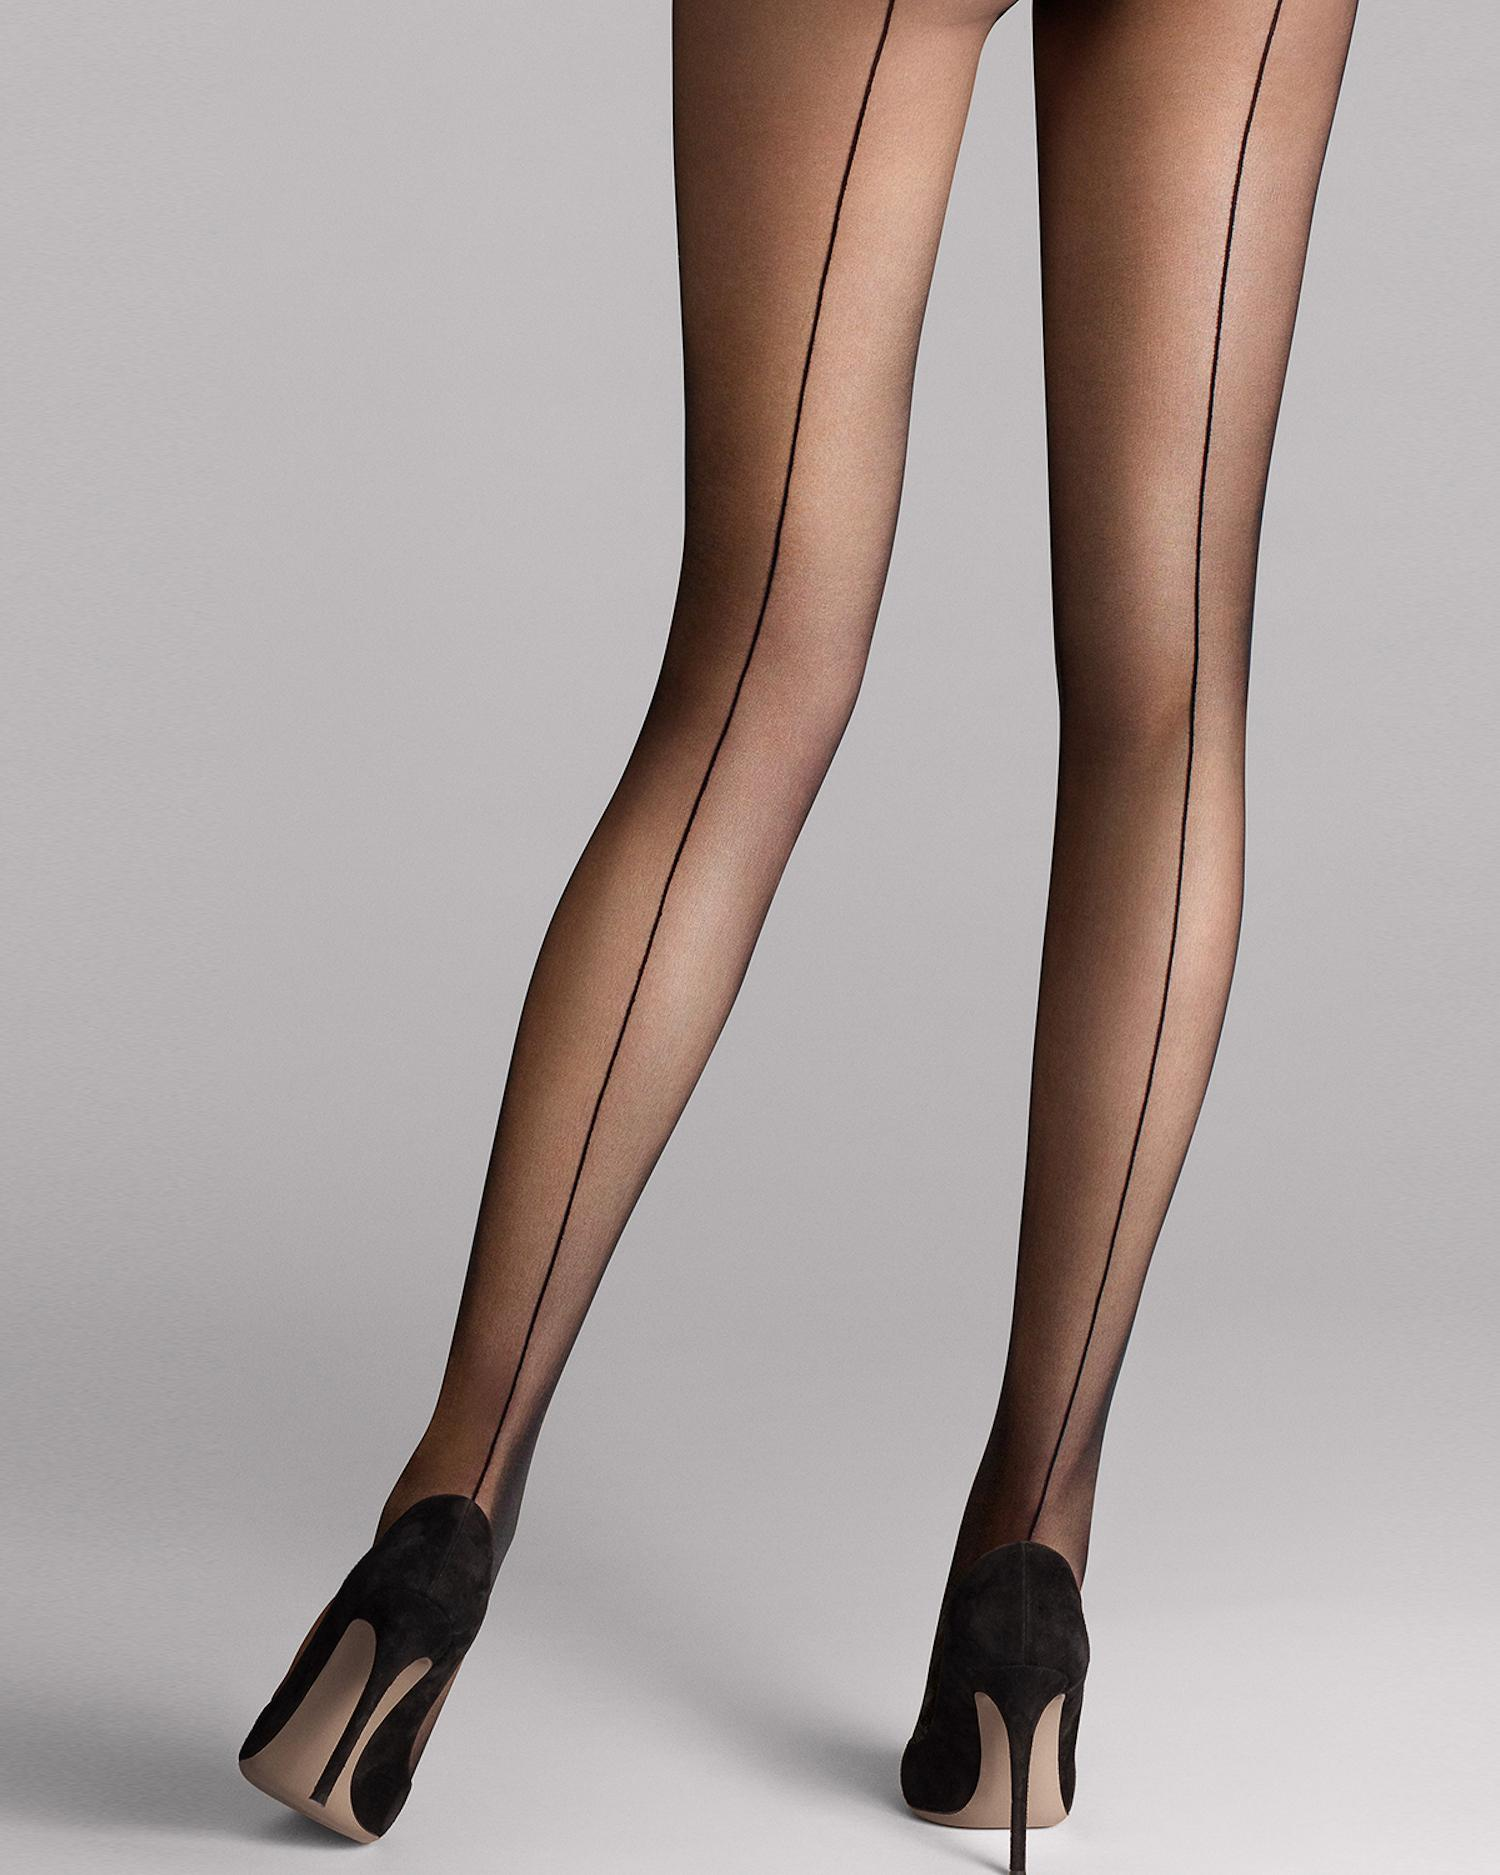 Wolford individual stay hip in stock at uk tights